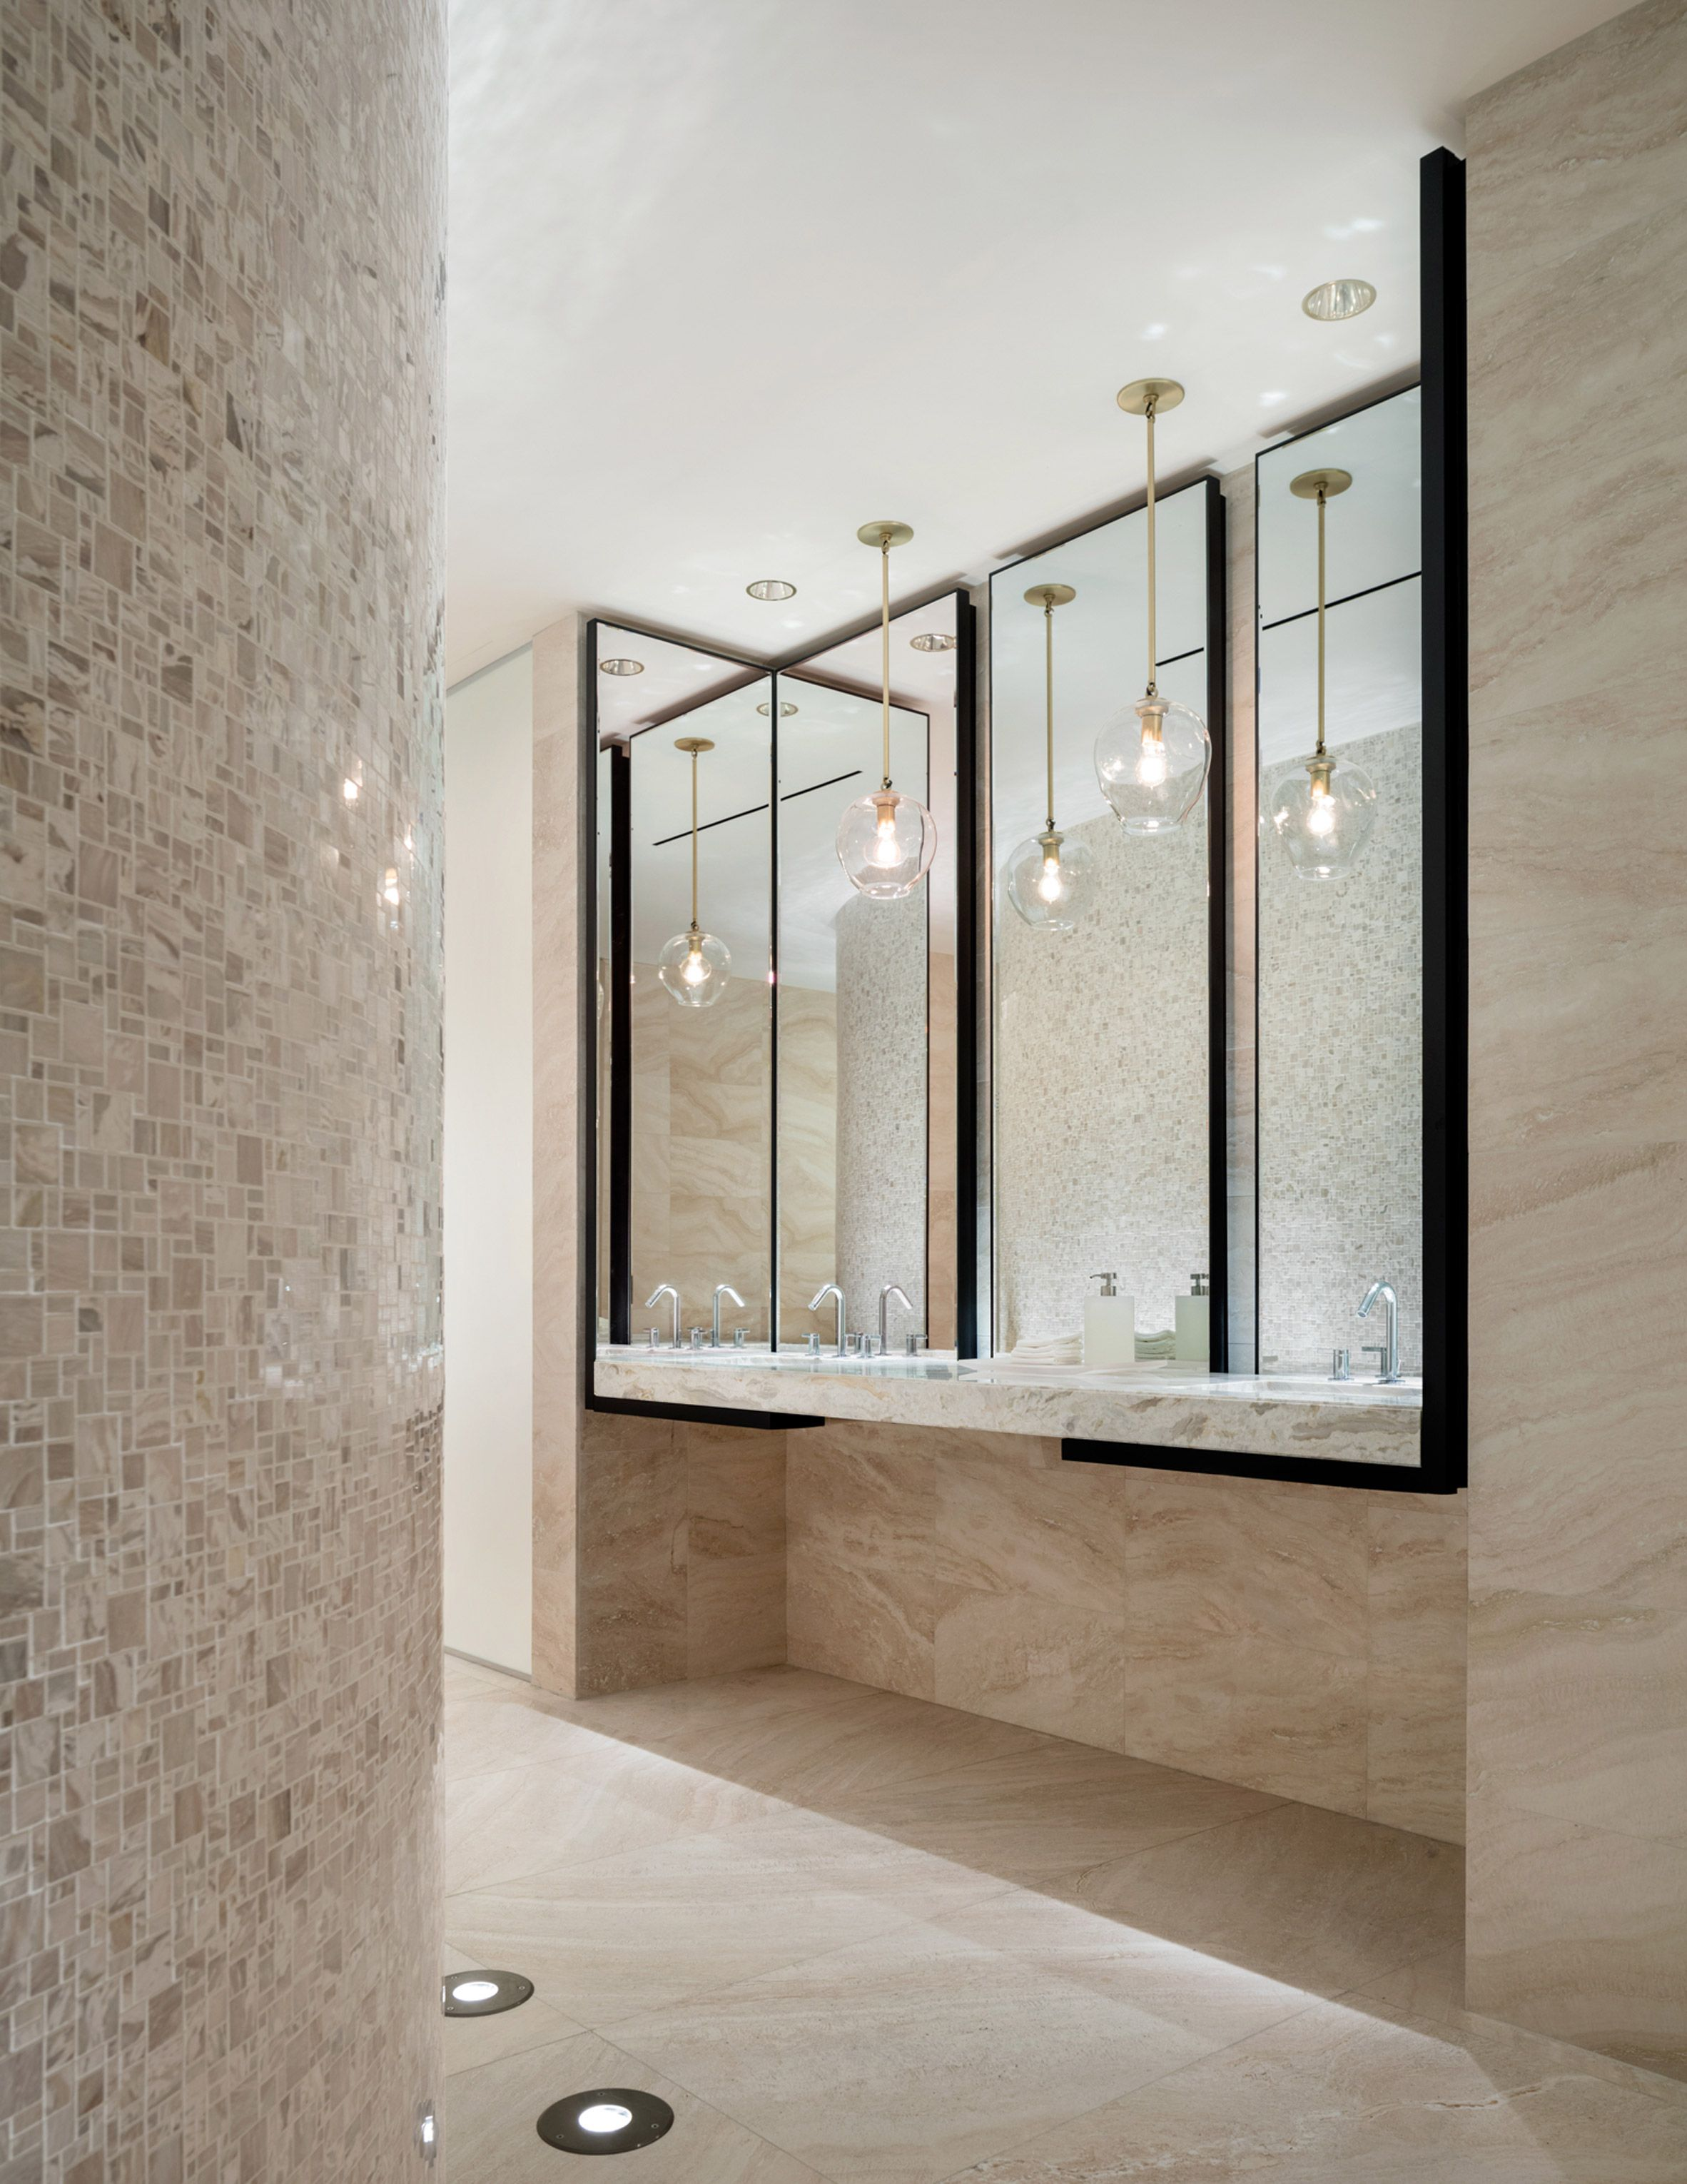 Design firm Yabu Pushelberg has completed the interiors for the